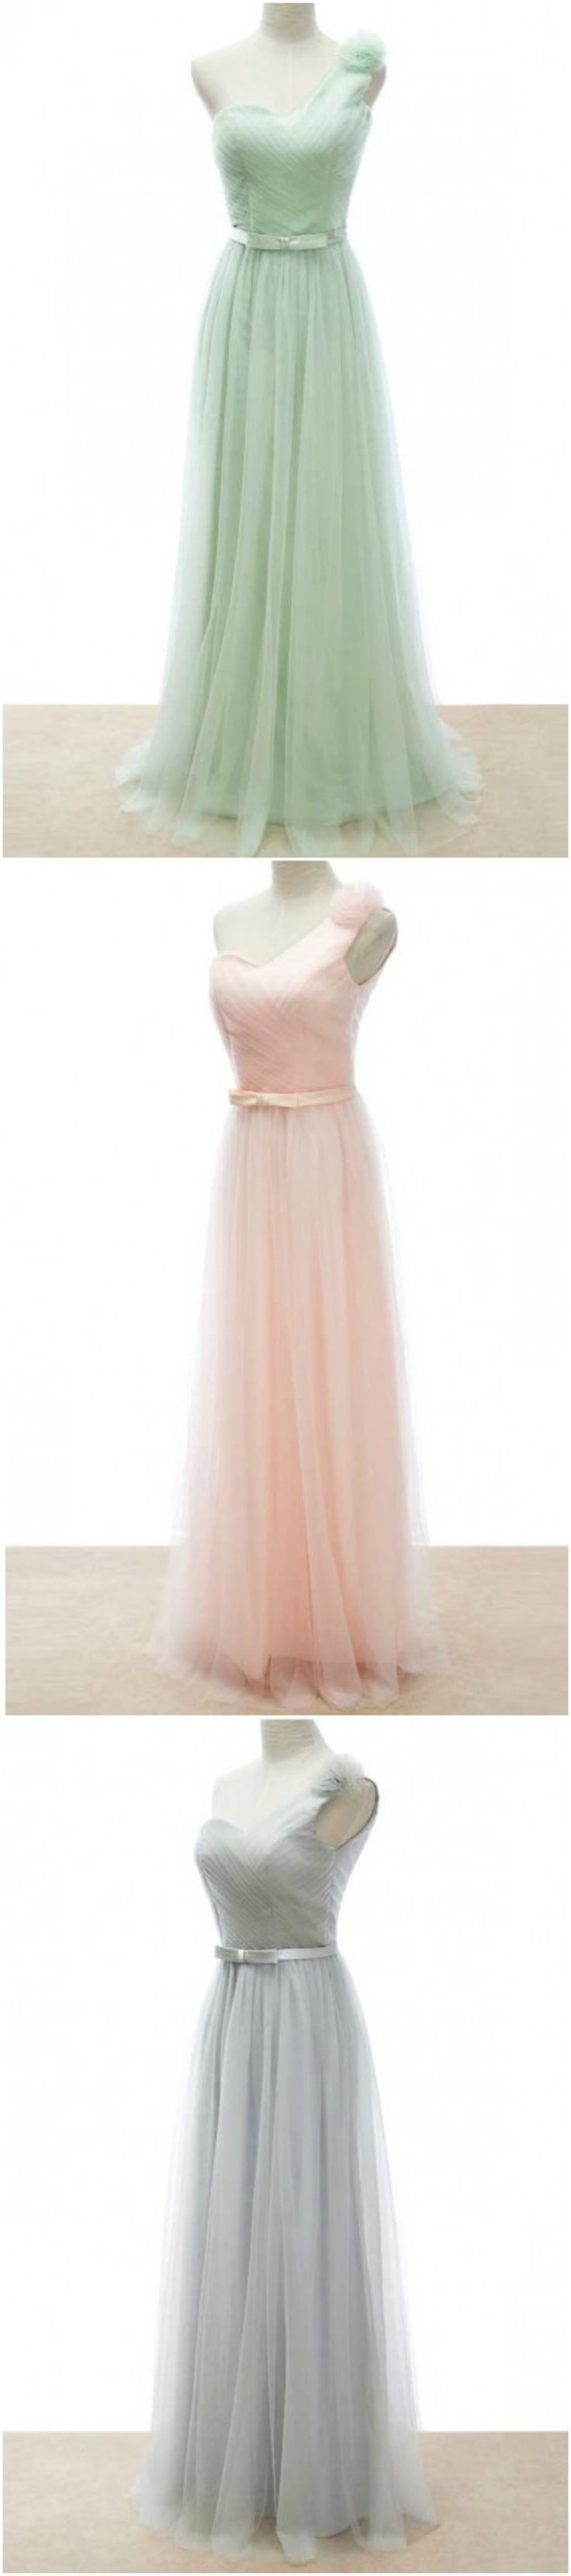 Making It Easy to Create a Beautiful Wedding Color Palette. One Shoulder Chiffon Bridesmaid Dress in Three colors Styles: Mint Green, Blush Pink, Ligh...